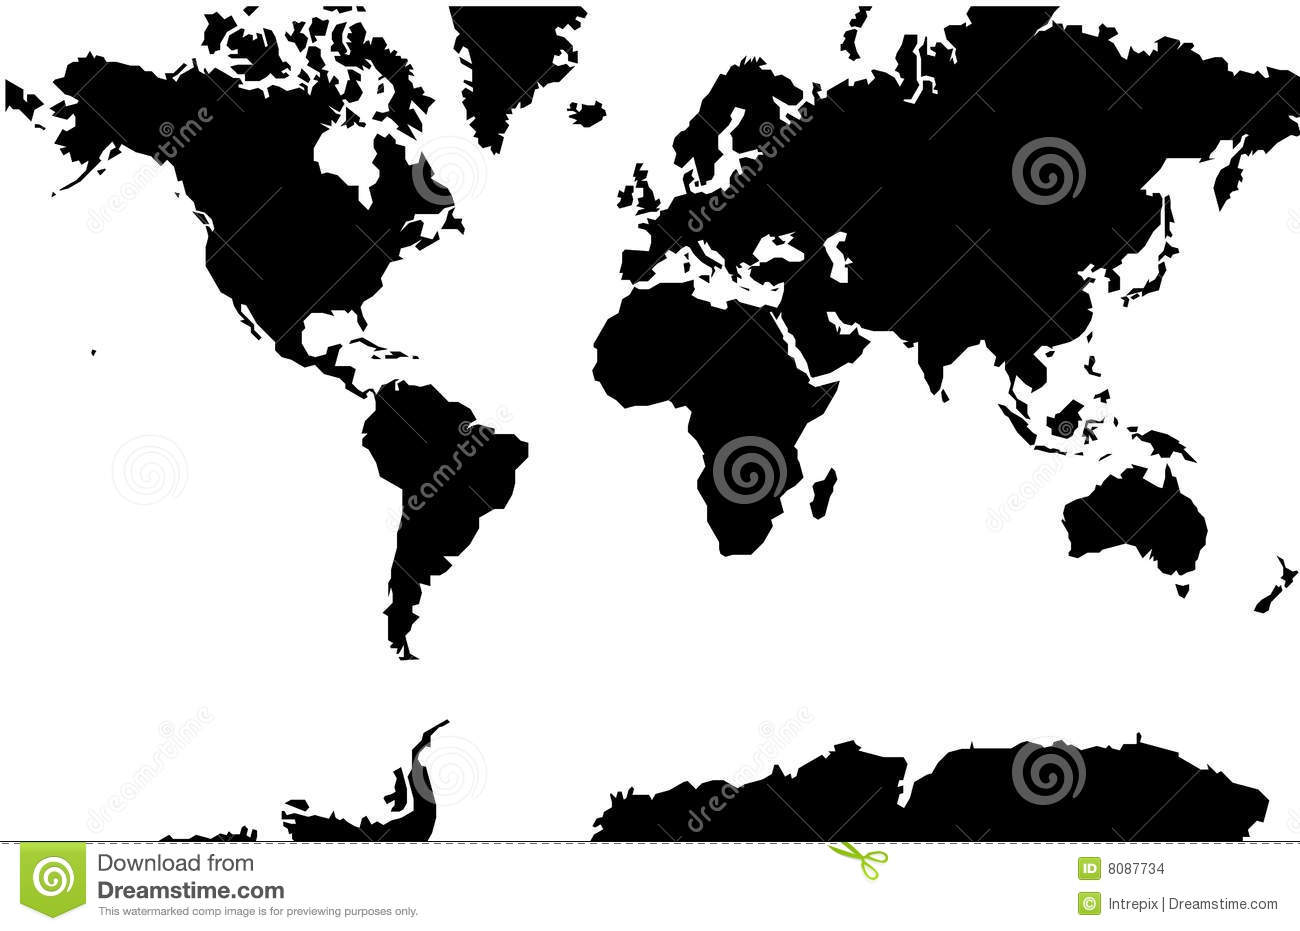 World map mercator projection stock vector illustration of world map mercator projection gumiabroncs Choice Image